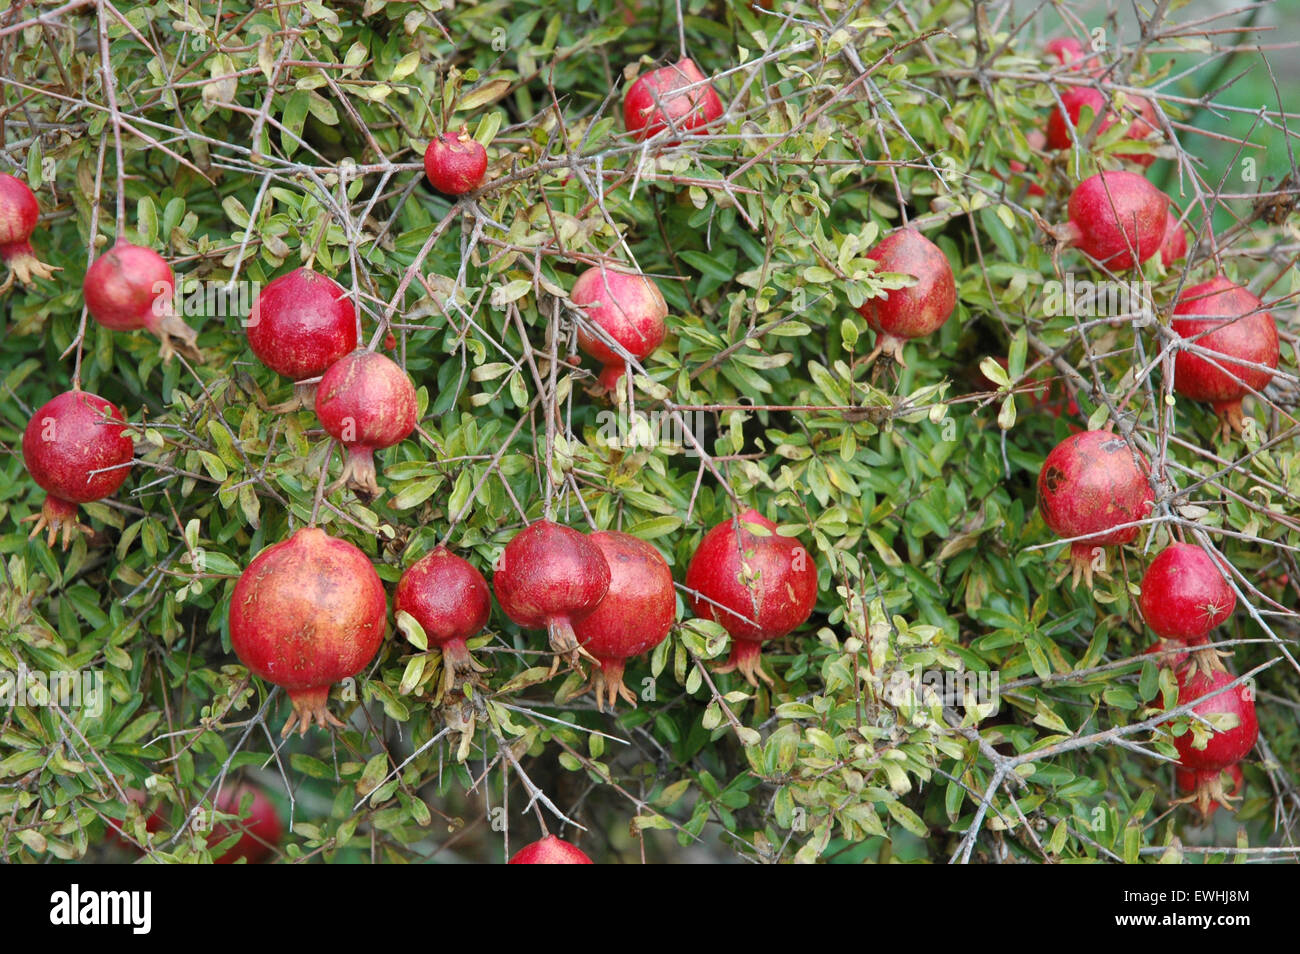 closeup image of small / mini pomegranate tree with fruits in, Natural flower